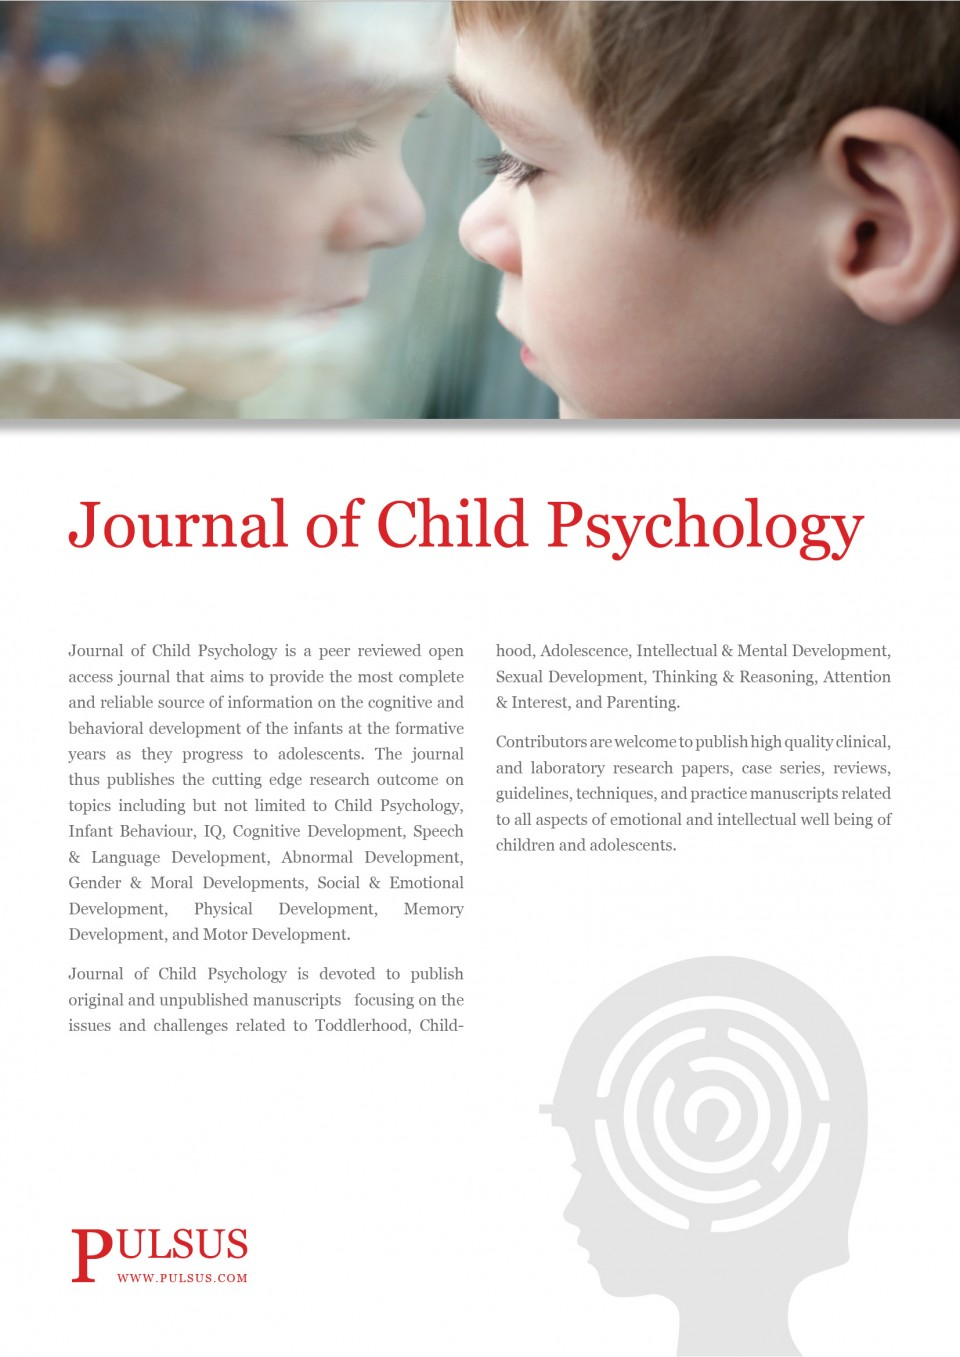 001 Journal Of Child Psychology Flyer Research Paper Articles On Wondrous Development 960